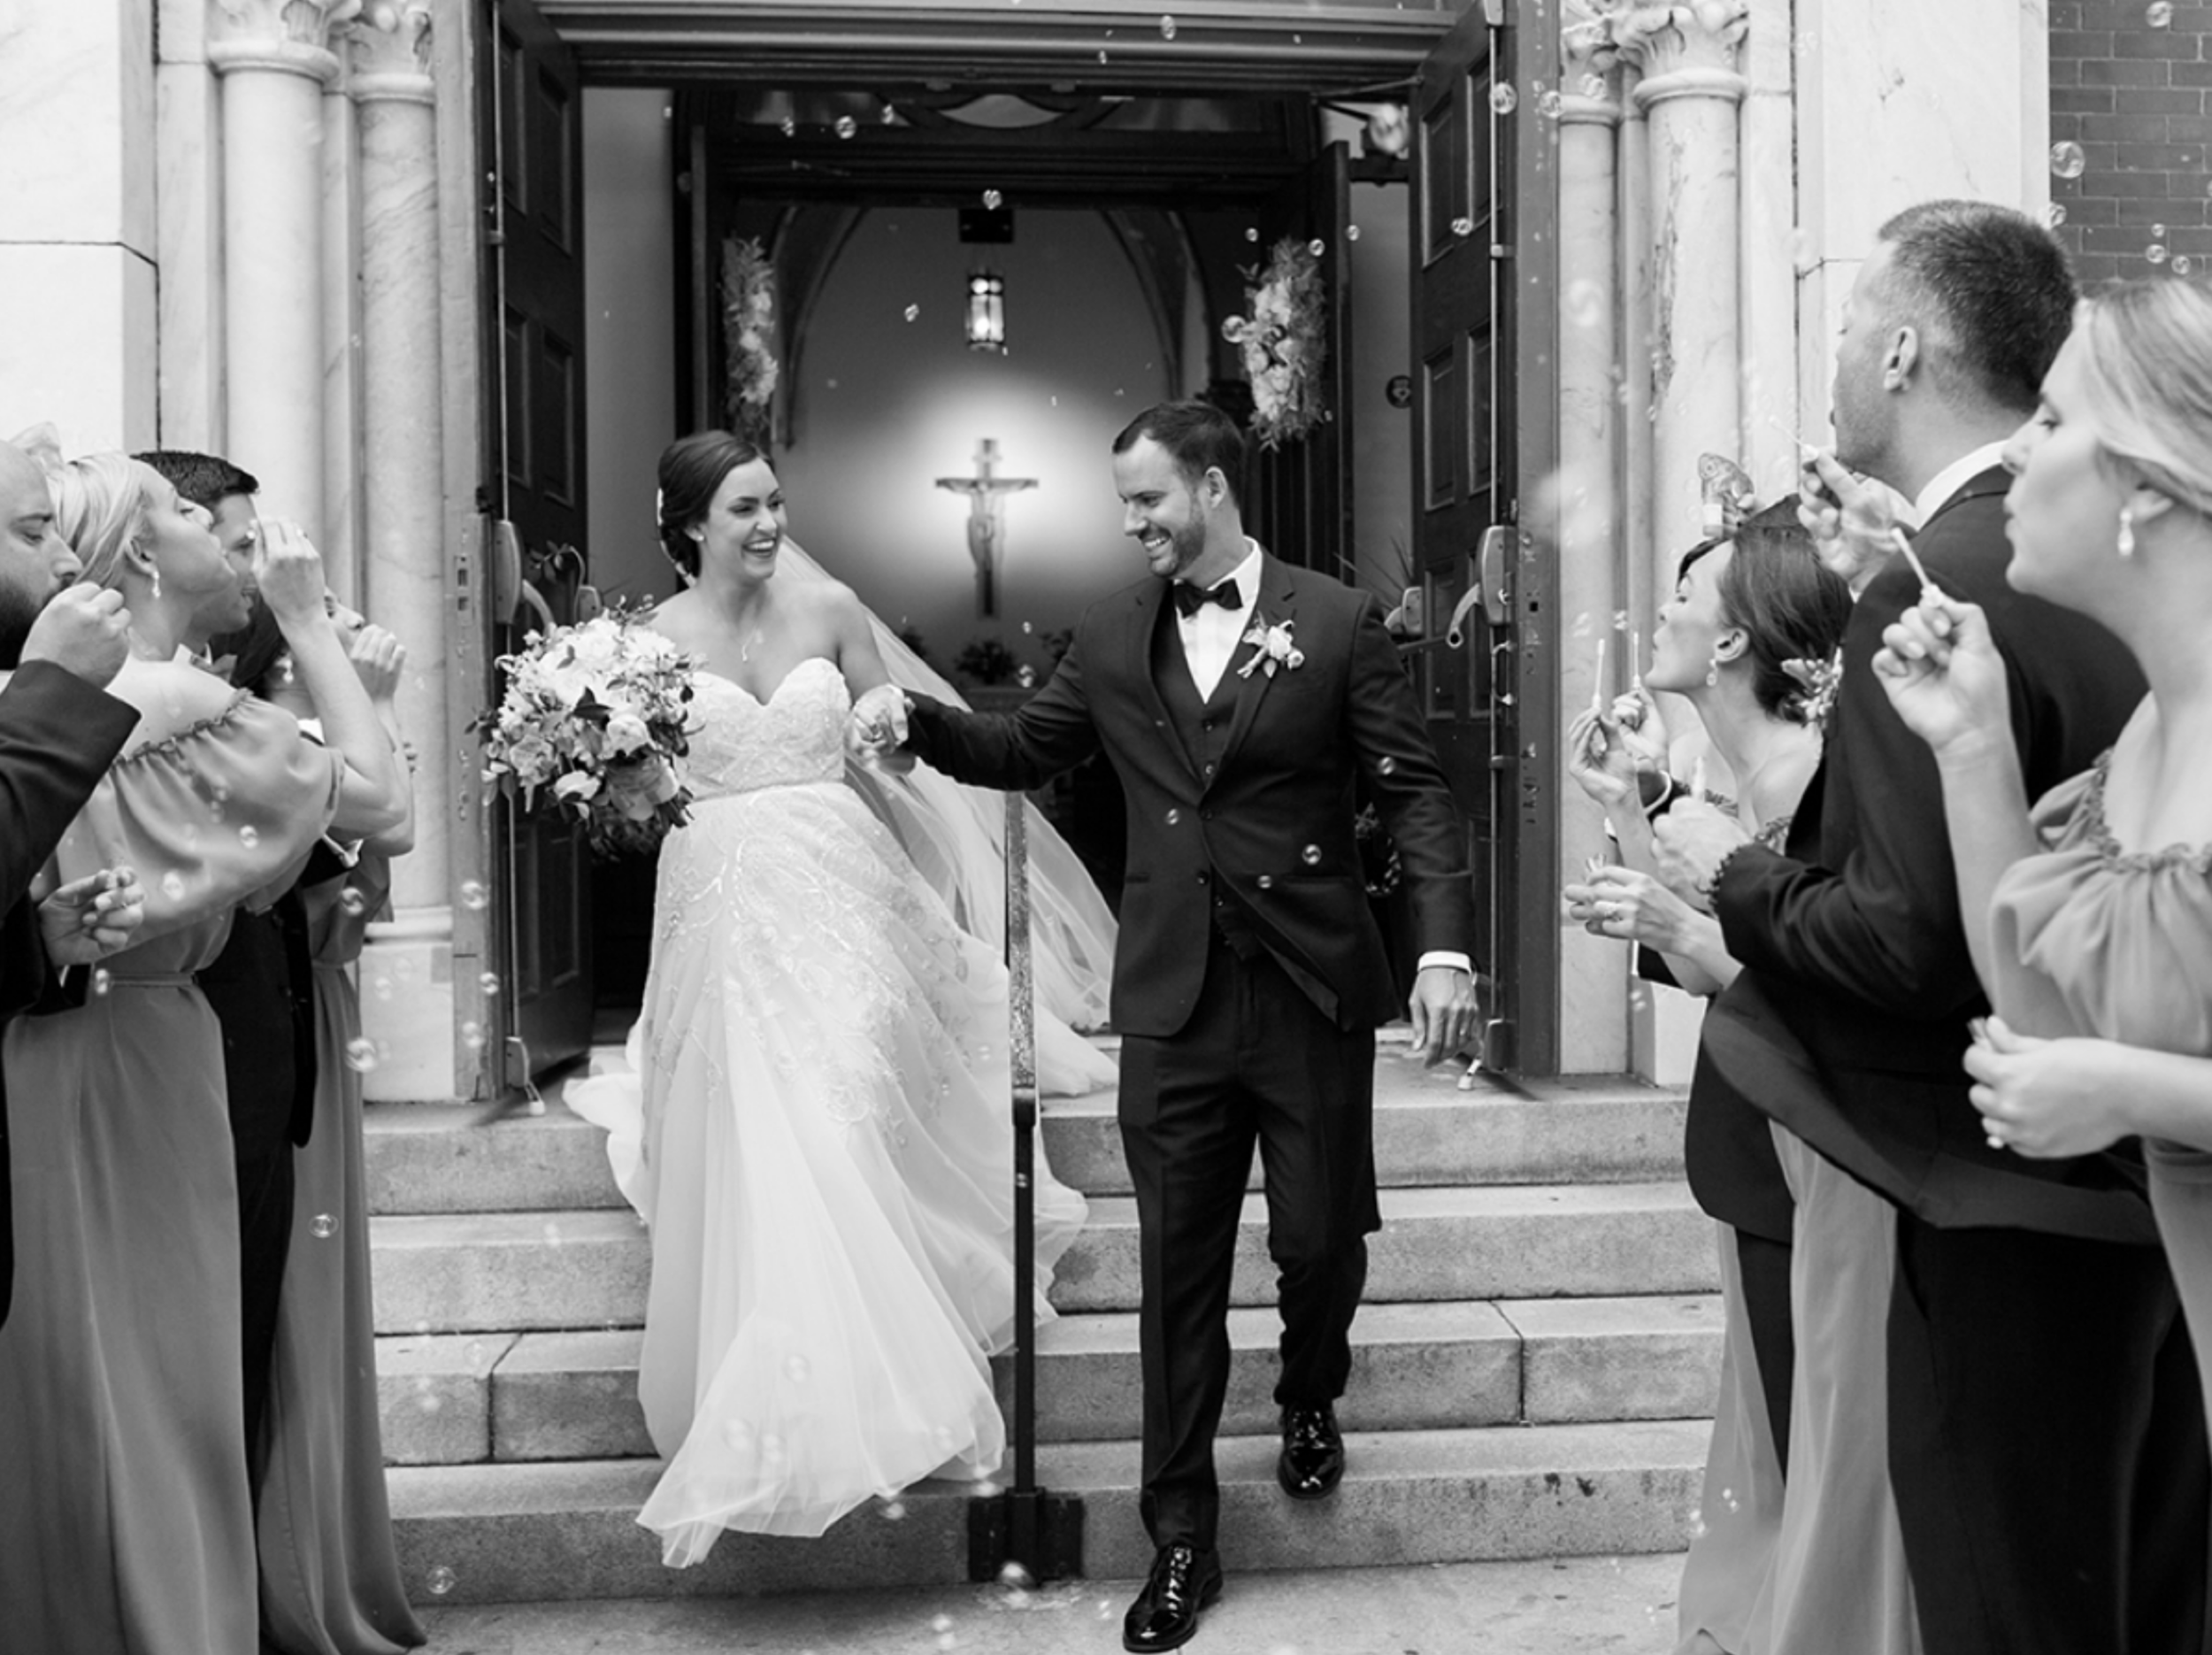 ceremony_exit_with_bubbles_west_palm_wedding_photographer_shannon_griffin.png